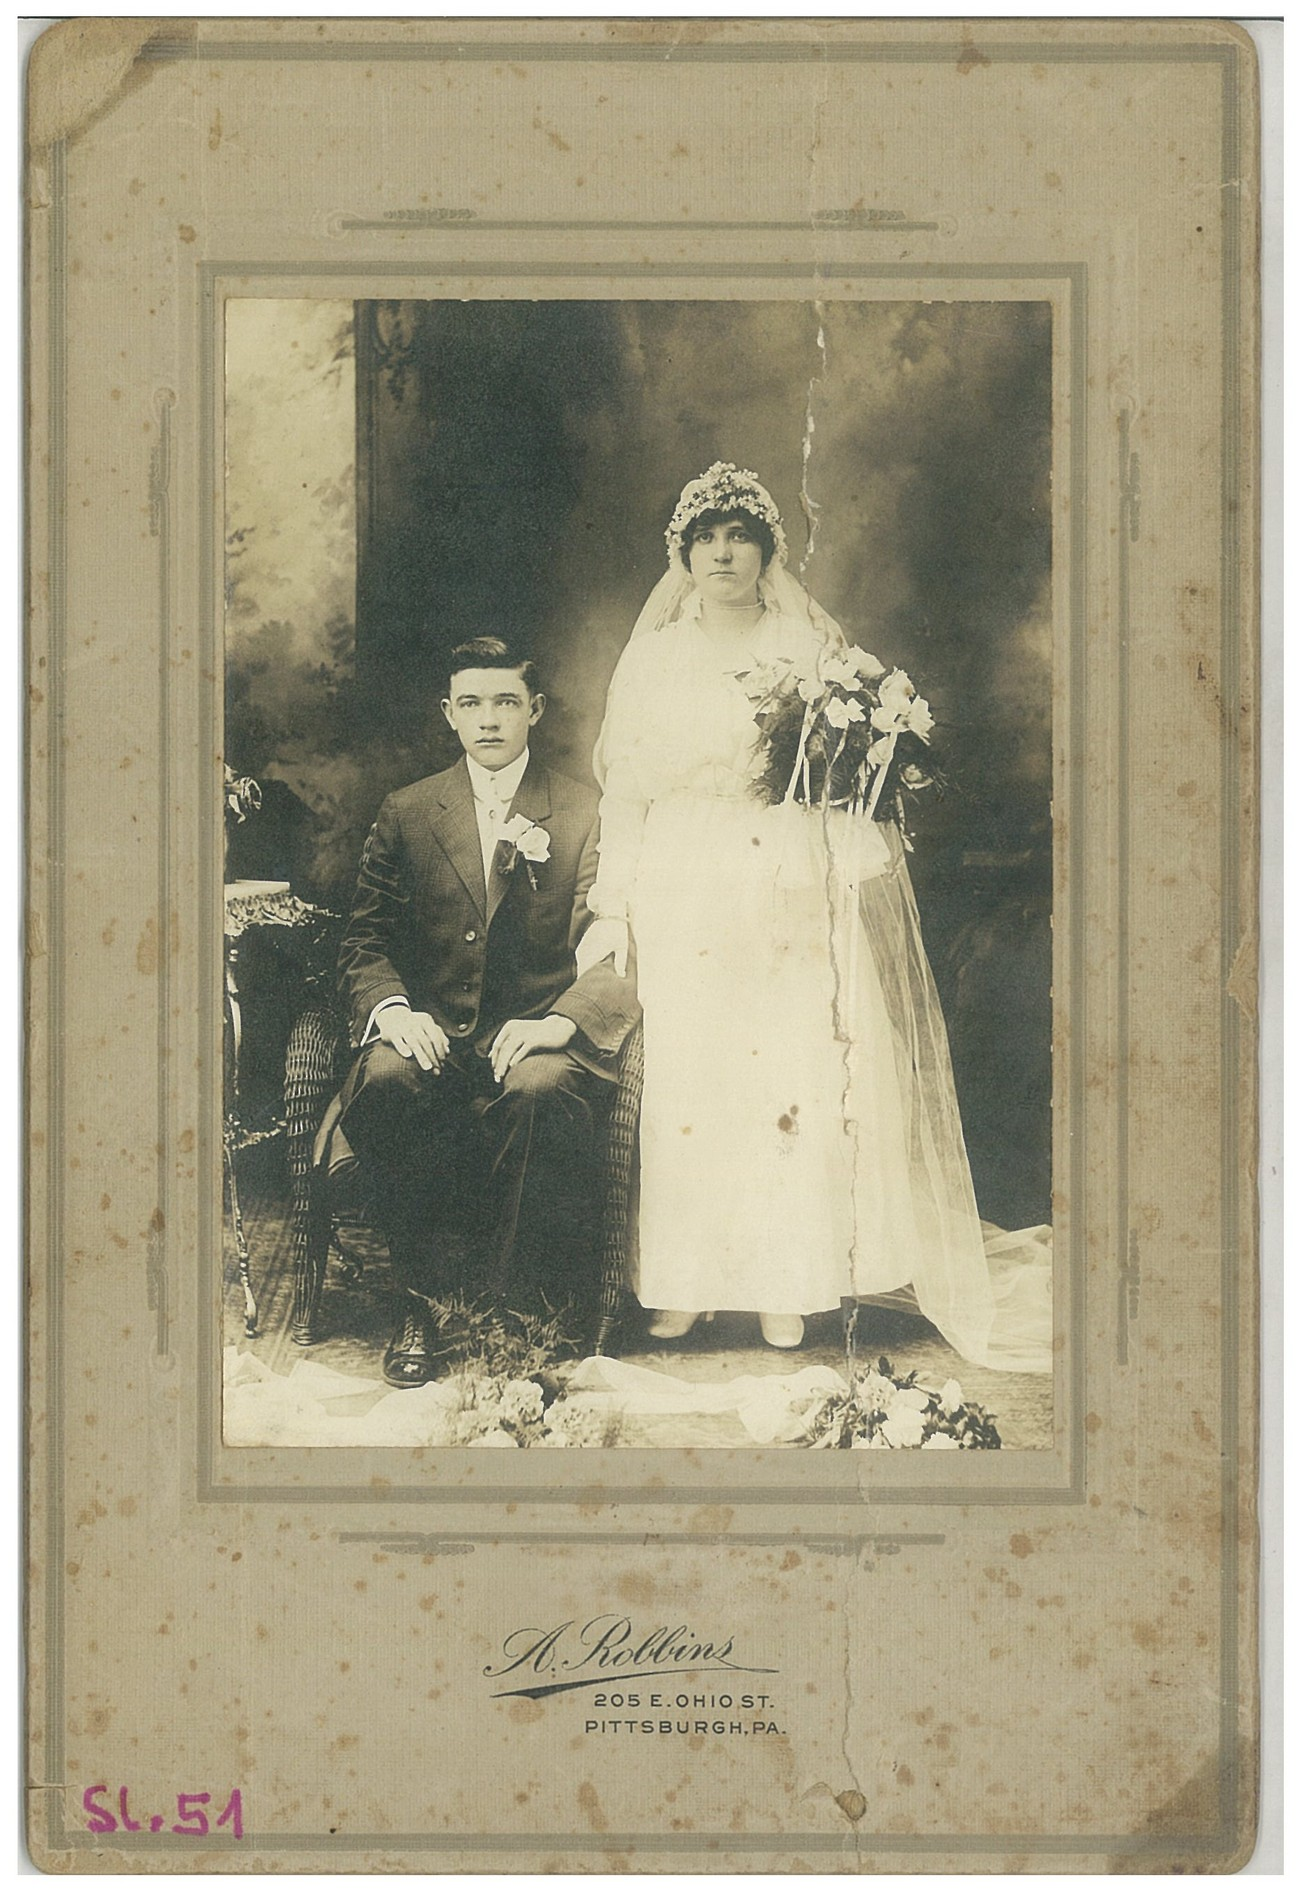 The wedding picture of Marko Čadonič and Frančiška Erdeljac; they were married on 30 May 1916 at the St Nicholas Church in Pittsburgh. Unknown photographer, private archive of Franc Čadonič.